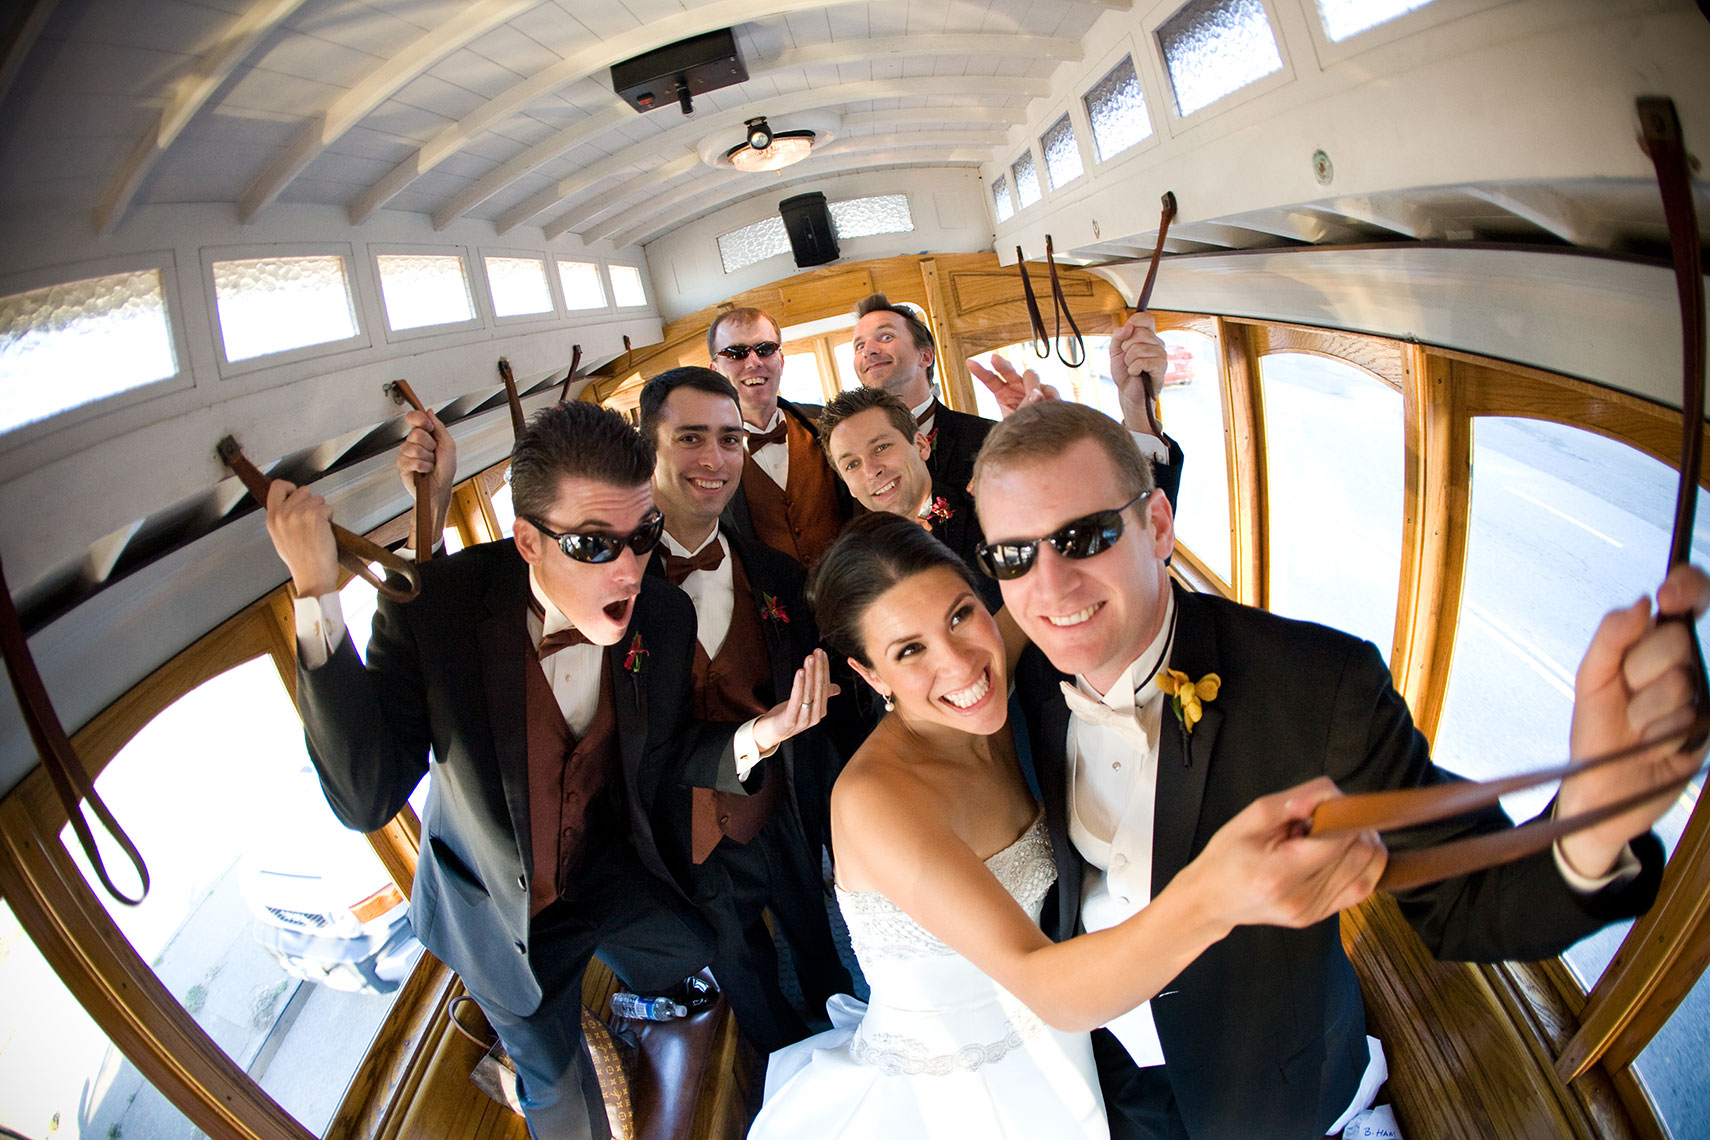 San Francisco Trolly wedding party